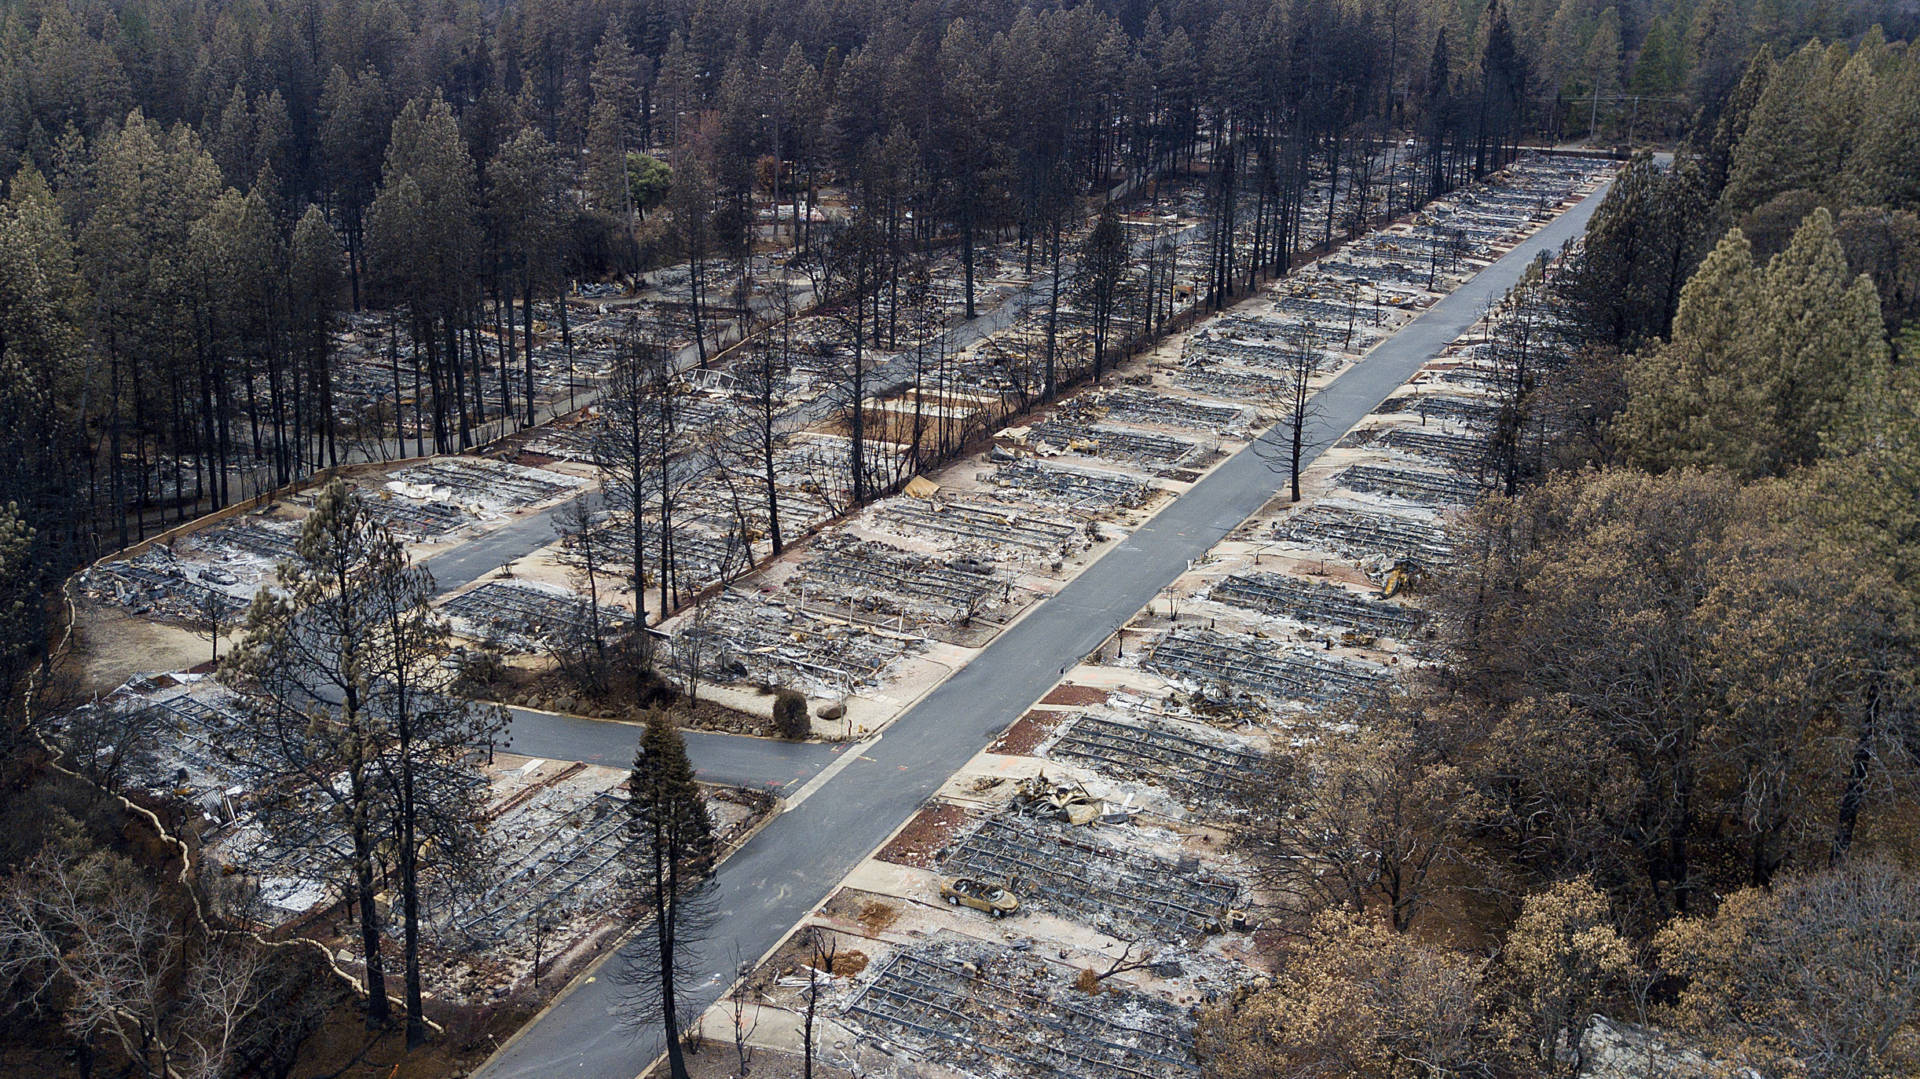 The remains of a mobile home park in Paradise burned by the November 2018 Camp Fire.  Noah Berger/AP